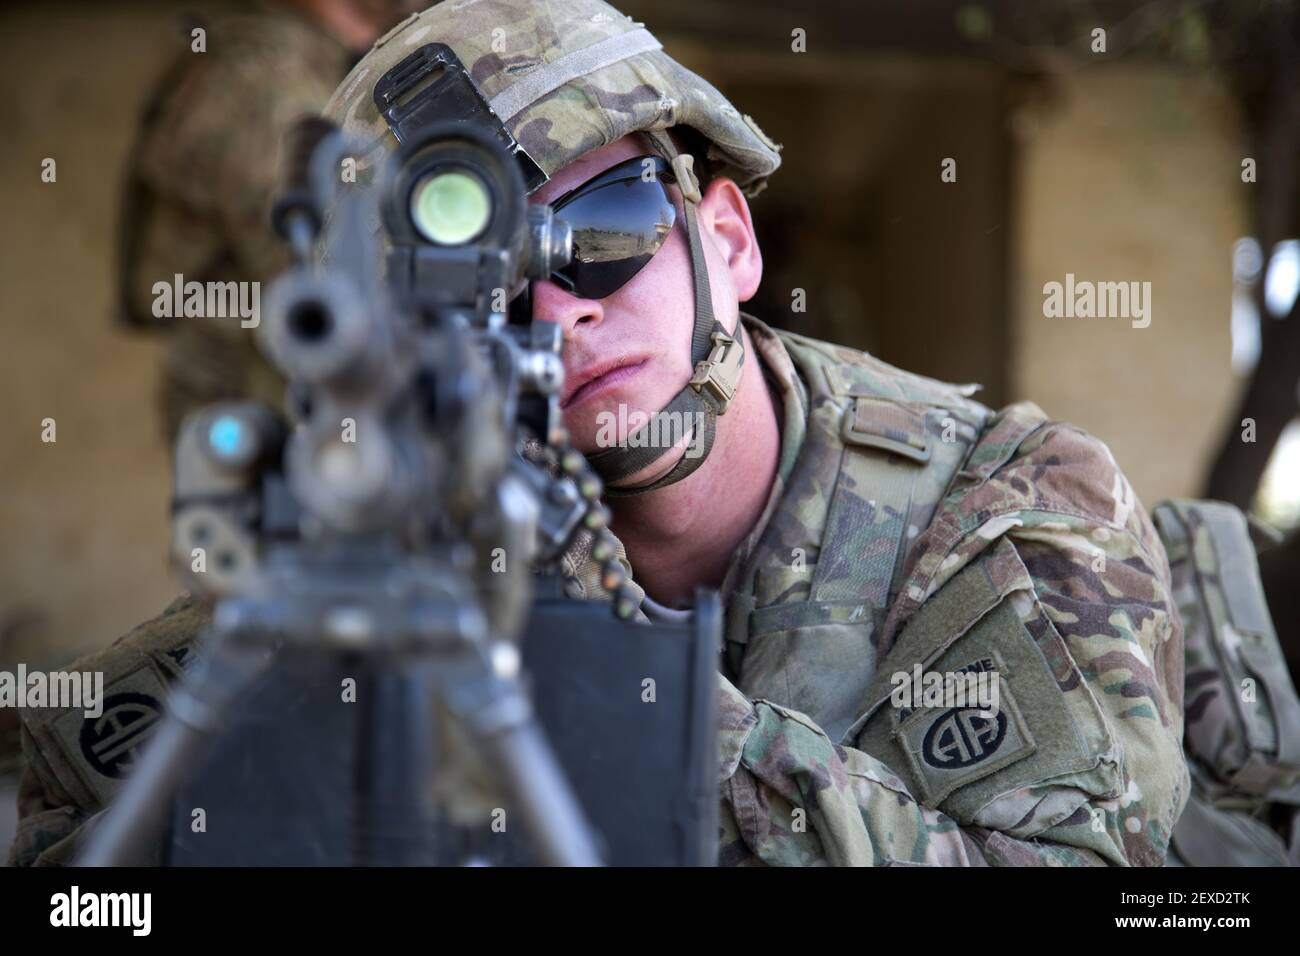 U.S. Army Pfc. Eric Krussier, a paratrooper assigned to Bravo Troop, 5th Squadron, 73rd Cavalry Regiment, 3rd Brigade, 82nd Airborne Division, looks down his sights of his weapon while he pulls security during squad level training at Camp Taji, Iraq, Aug. 3, 2015. Coalition forces routinely practice what they plan to teach Iraqi soldiers prior to each round of instruction. Training at the building partner capacity sites is an integral part of Combined Joint Task Force – Operation Inherent Resolve's multinational effort to train Iraqi security force personnel to defeat the Islamic State of  Stock Photo